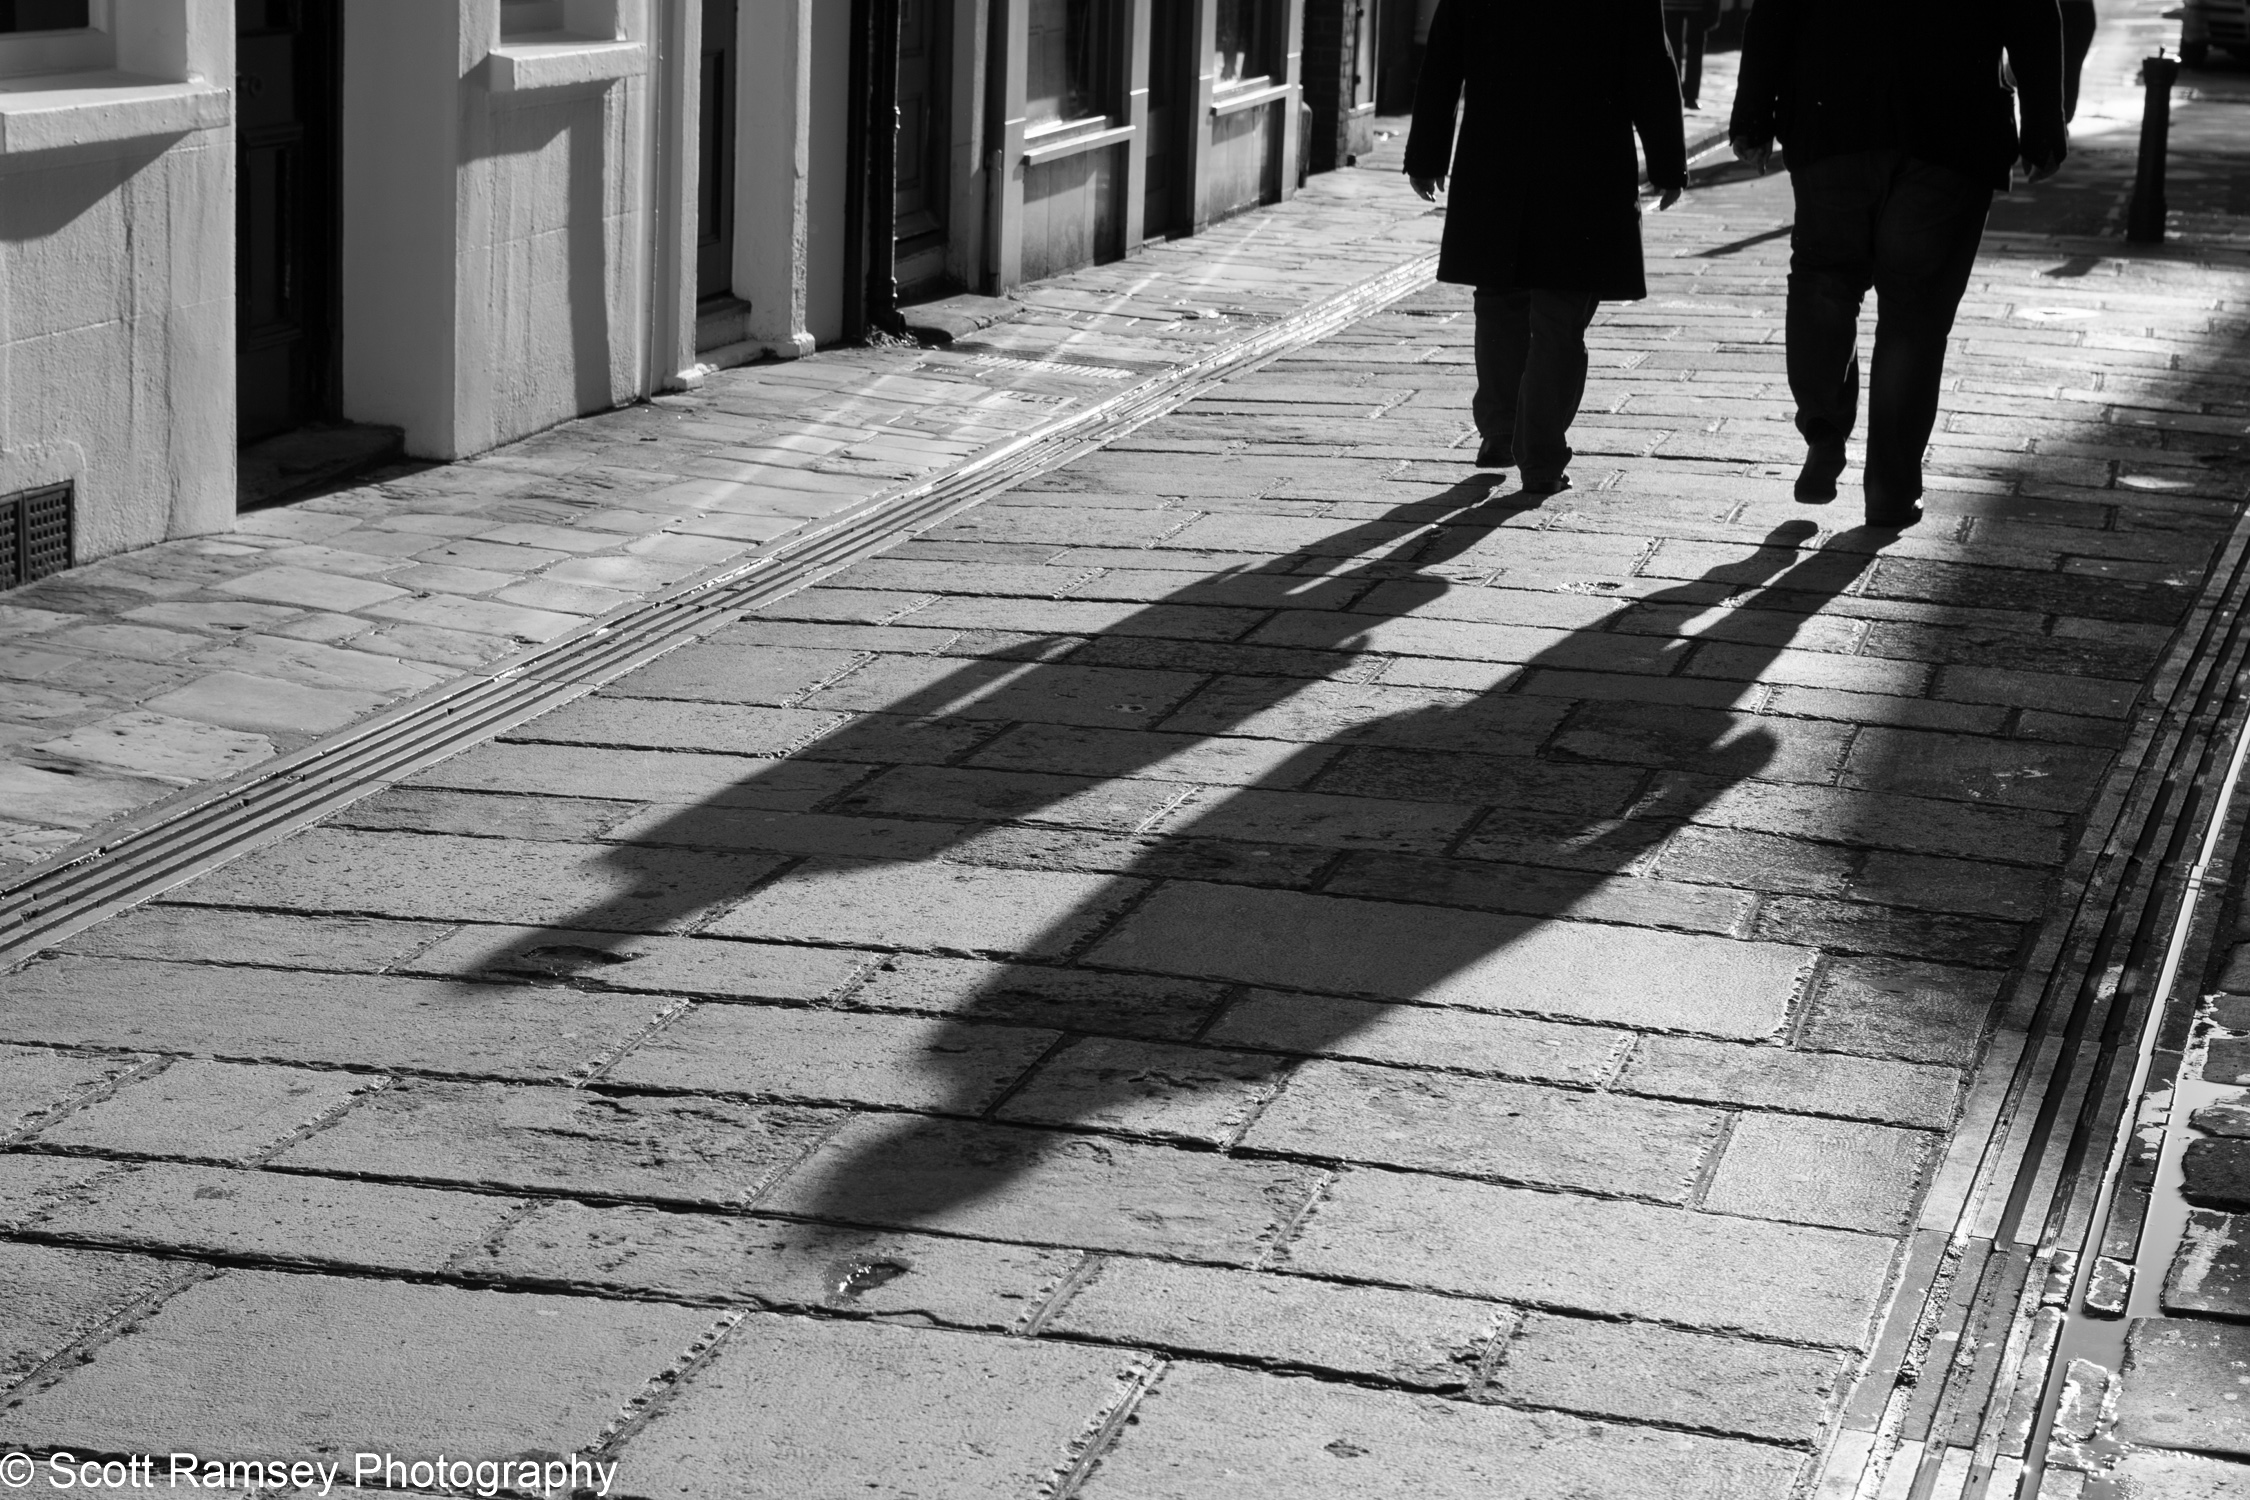 People cast long shadows in the winter sun as they walk along a street in Chichester, West Sussex, UK.